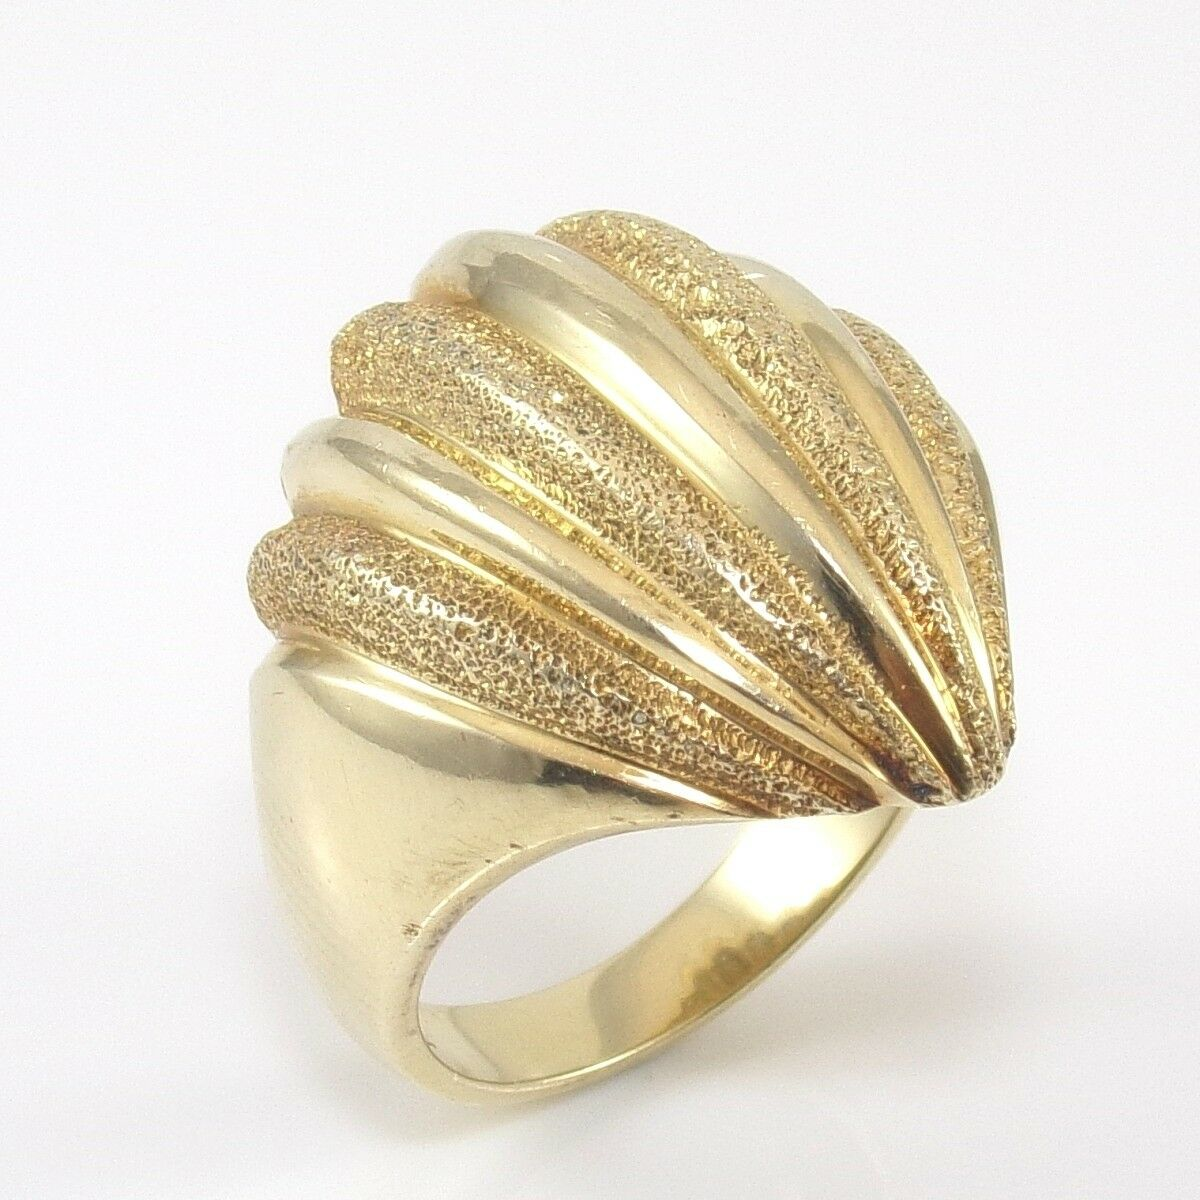 14K Yellow gold Plain Brushed Dome Scallop Ring Size 8.5